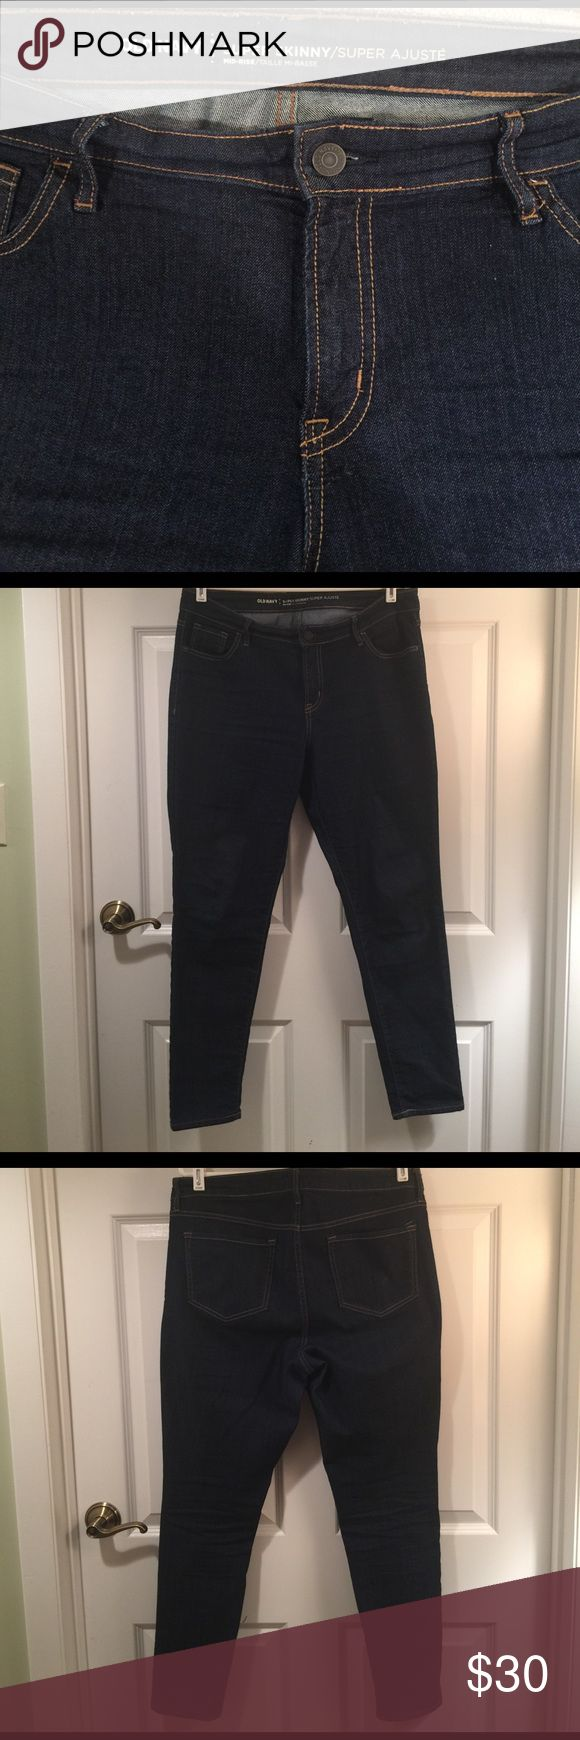 "Women's Old Navy Super Skinny Mid-Rise Jeans No rips, stains or holes. Inseam is approx 29"". Old Navy Jeans Skinny"